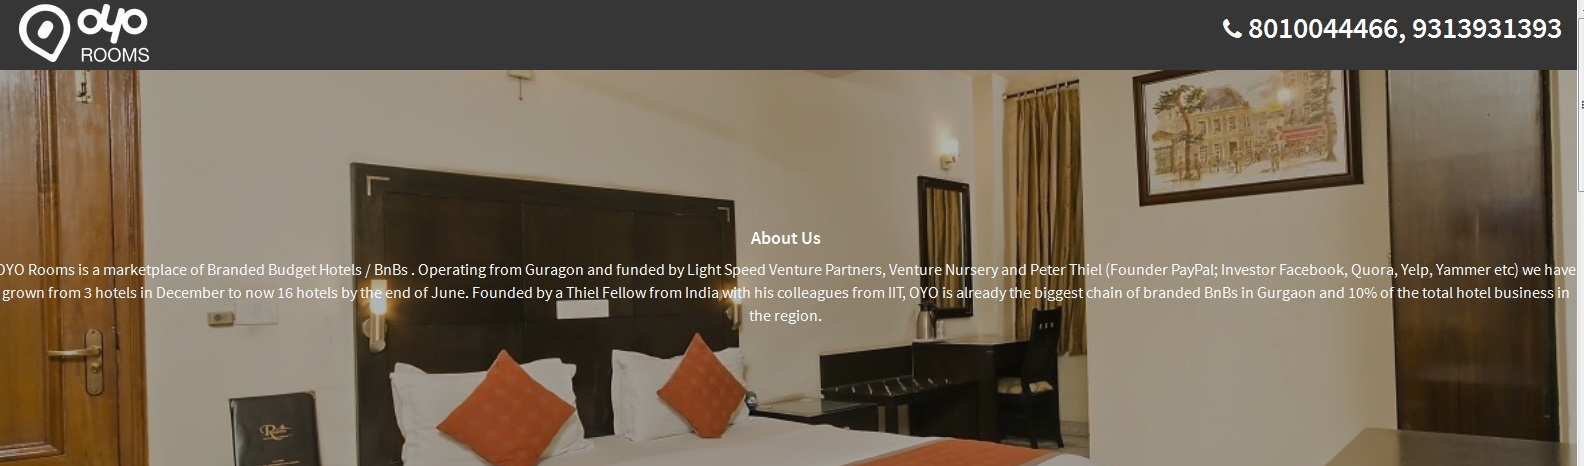 OYO Rooms for budget hotel rooms